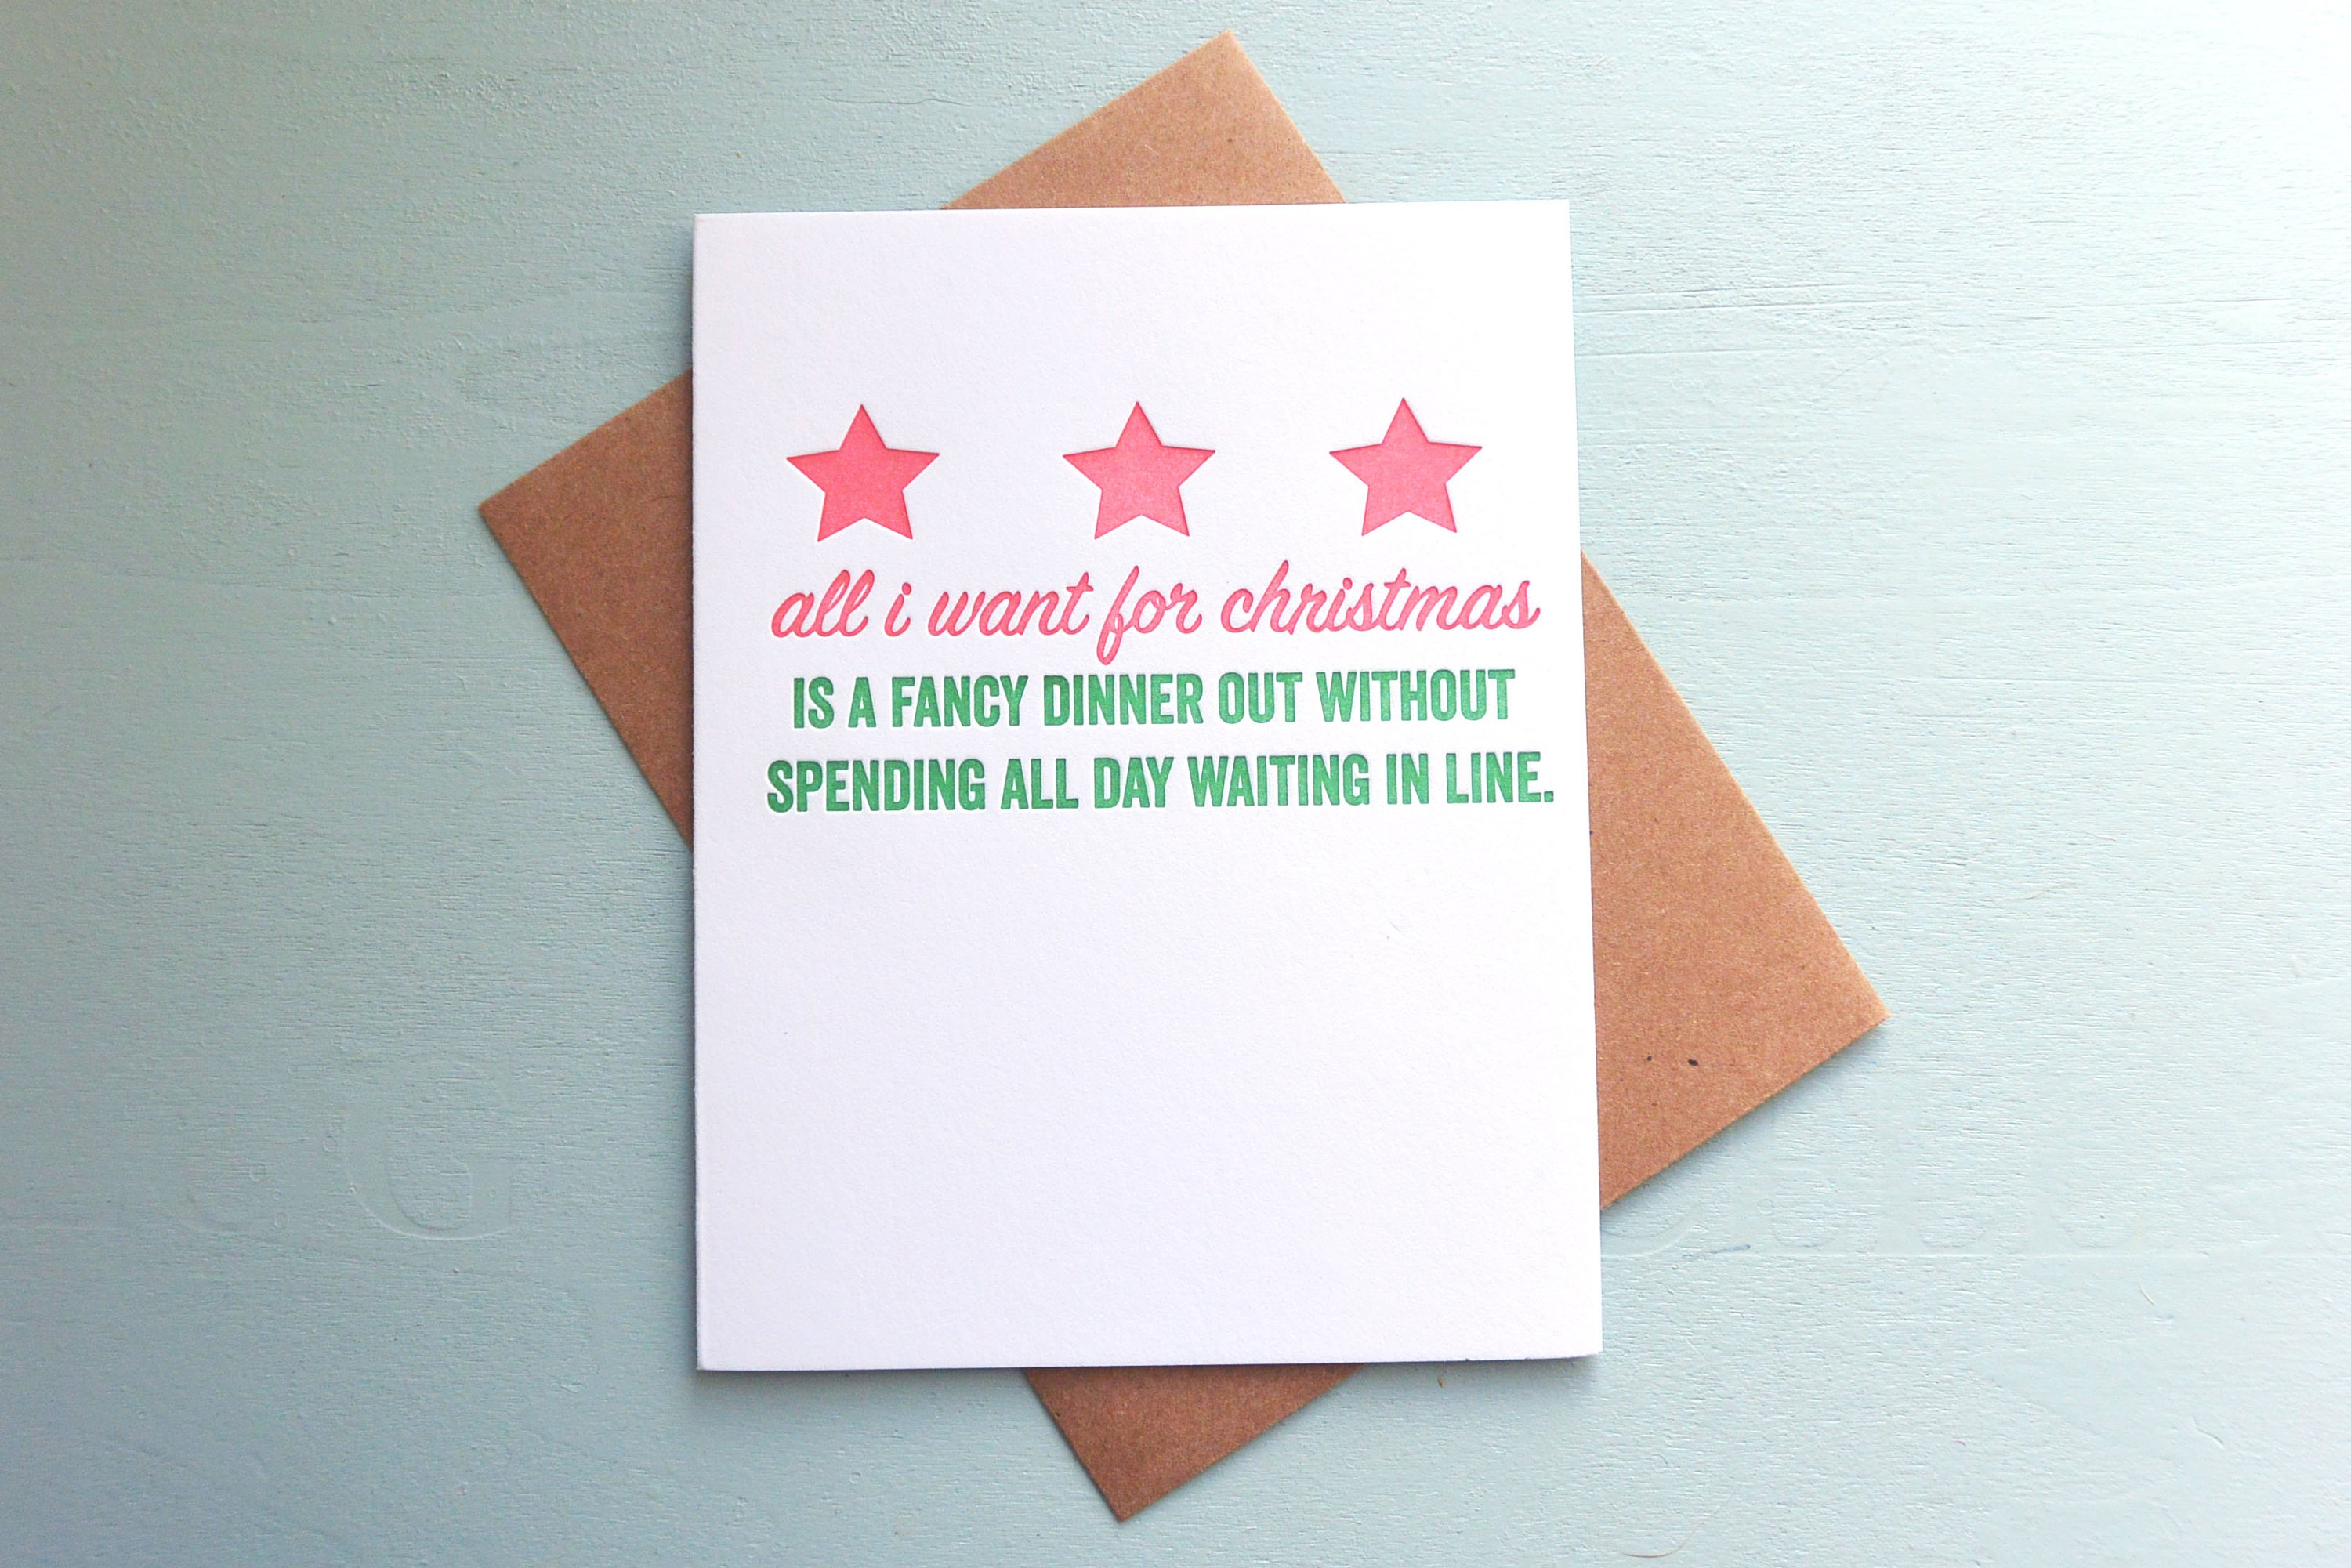 Letterpress Holiday Card All I Want for Christmas is a Fancy